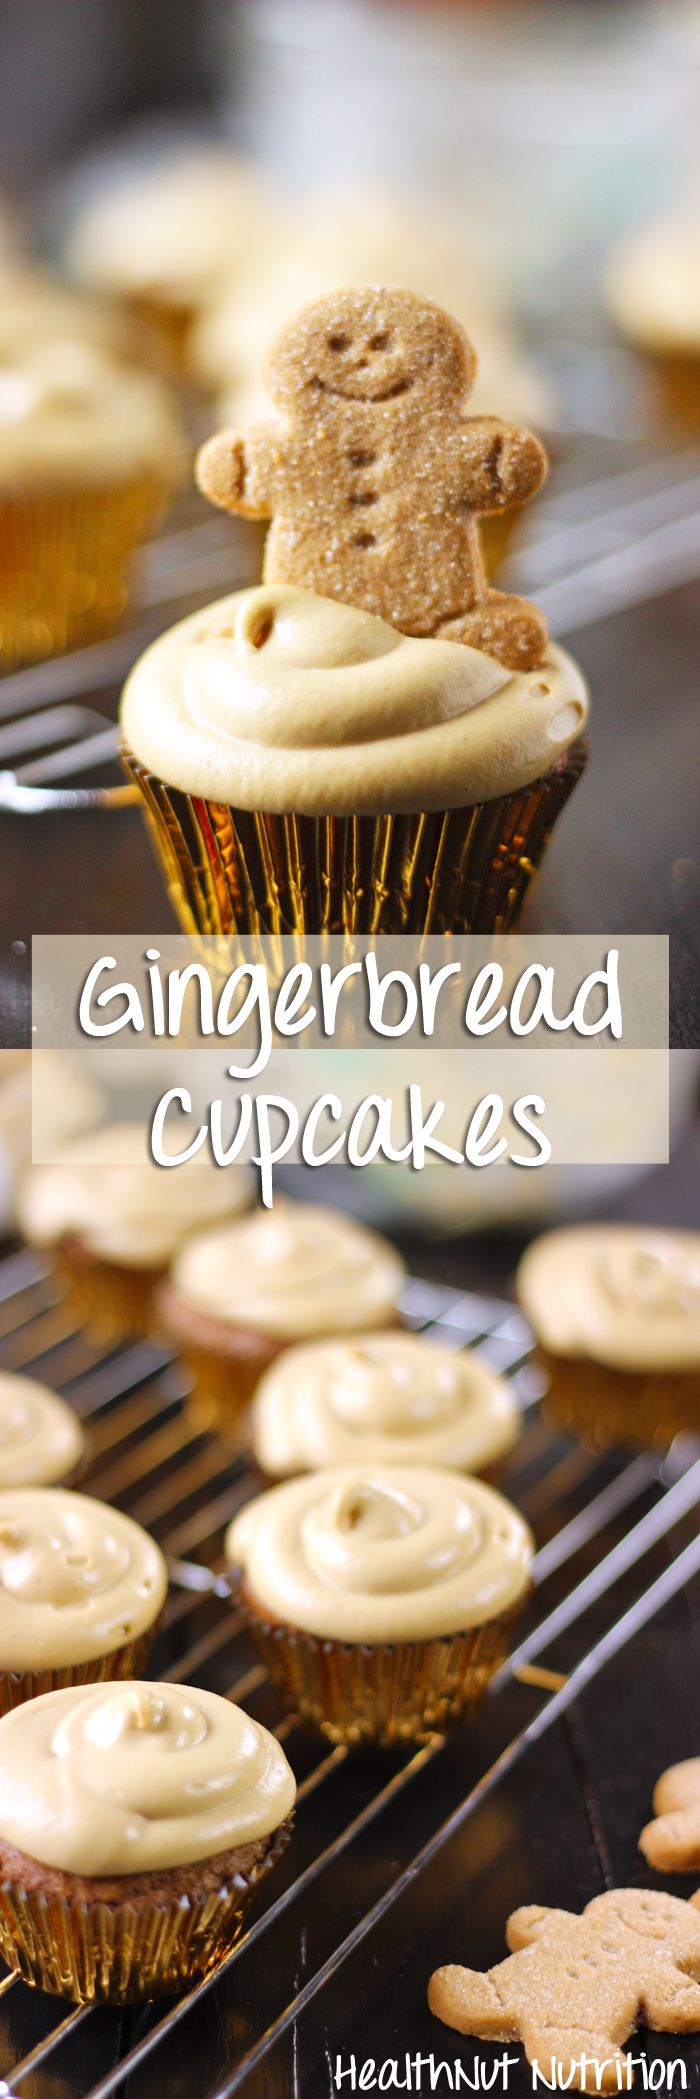 GINGERBREAD CUPCAKES RECIPE WITH A MOLASSES CASHEW BUTTERCREAM